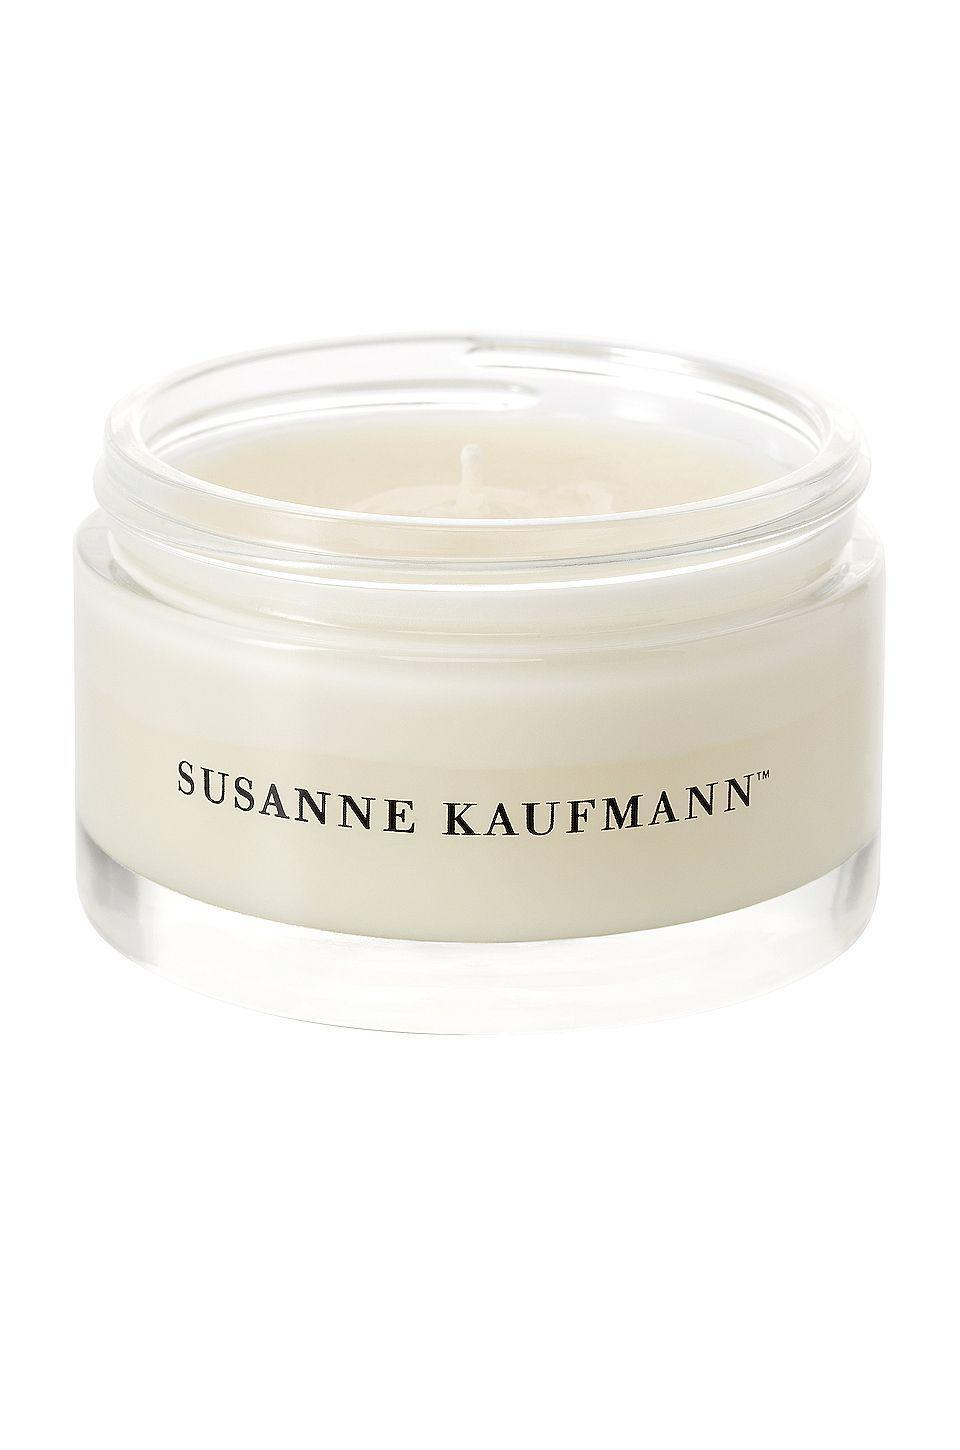 """<p><strong>Susanne Kaufmann</strong></p><p>revolve.com</p><p><strong>$89.00</strong></p><p><a href=""""https://go.redirectingat.com?id=74968X1596630&url=https%3A%2F%2Fwww.revolve.com%2Fdp%2FSKAU-WU23%2F&sref=https%3A%2F%2Fwww.elle.com%2Fbeauty%2Fg34975490%2Fbest-candle-brands%2F"""" rel=""""nofollow noopener"""" target=""""_blank"""" data-ylk=""""slk:Shop Now"""" class=""""link rapid-noclick-resp"""">Shop Now</a></p><p>""""I love everything about this brand. My favorite was to unwind is to light this candle while taking a bath (and using the amazing bath oil) on days when I need to create a tranquil space for myself. The candle smells of figs and lemons which remind me of my best friend, who is from Italy and grew up with a fig tree in her backyard.""""—<em>Julianna Danielson, designer</em></p>"""